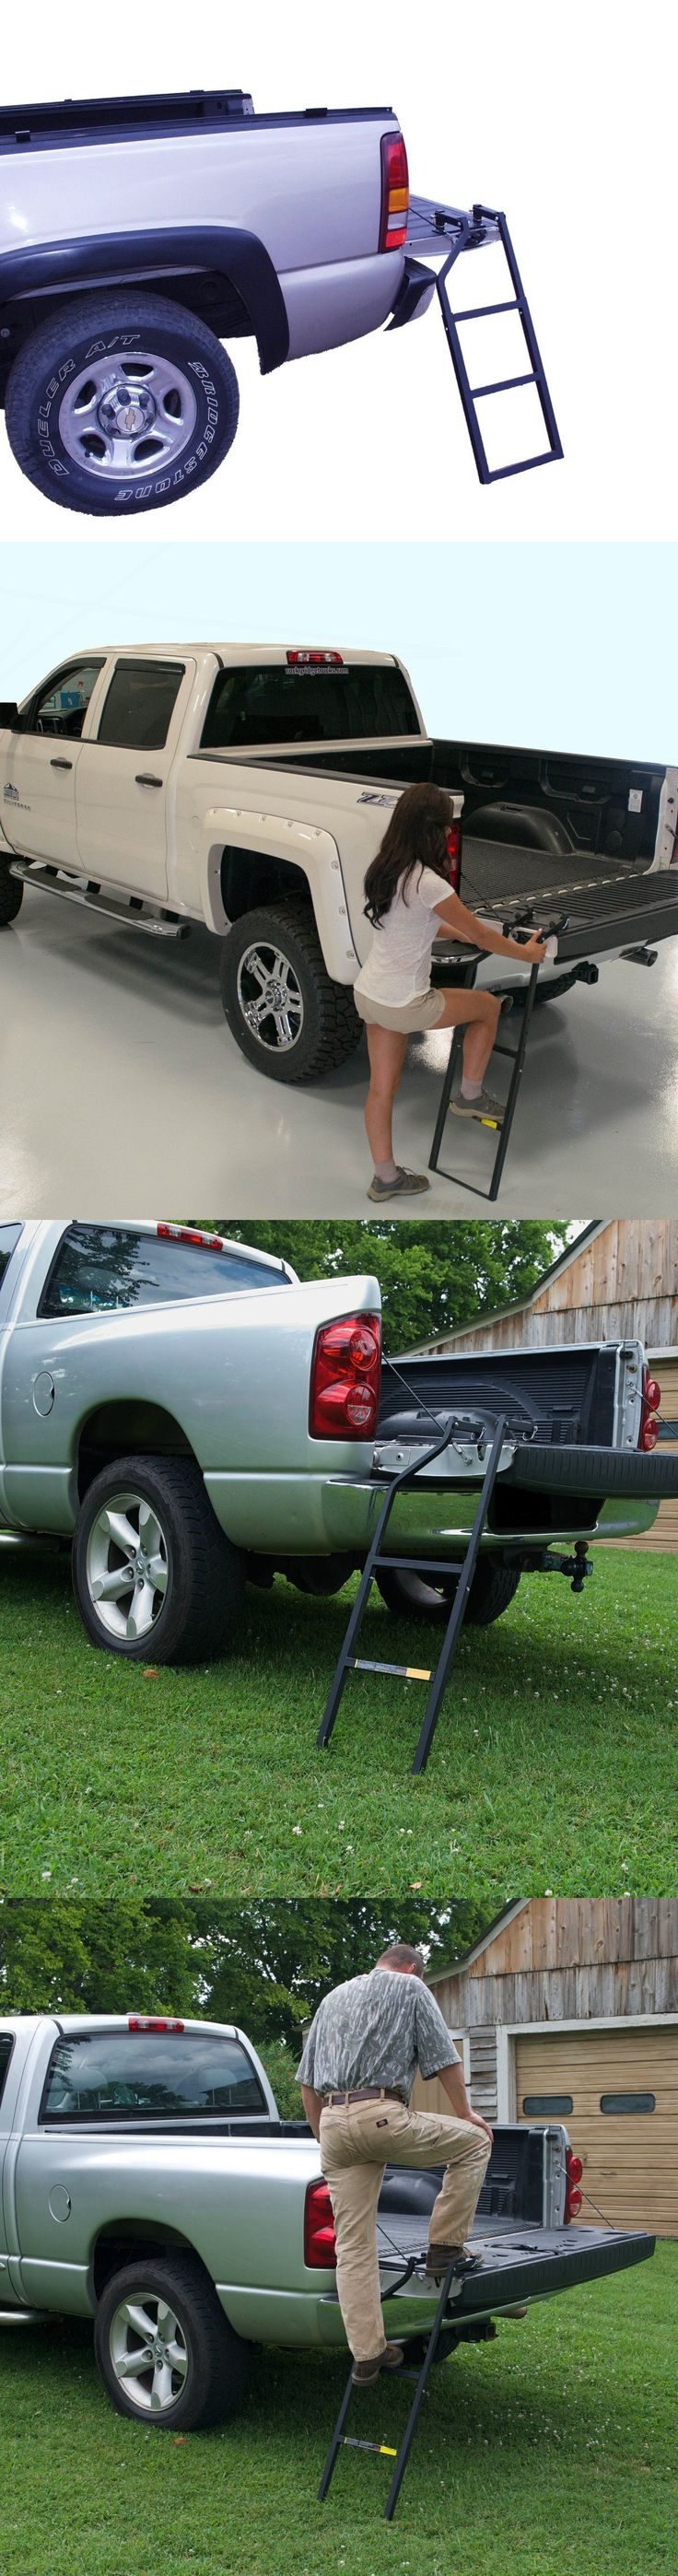 Other Backyard Games 159081: Universal Heavy Truck Tailgate Ladder Bed Tail Gate Step Easy Setup Fit Work -> BUY IT NOW ONLY: $52.6 on eBay!